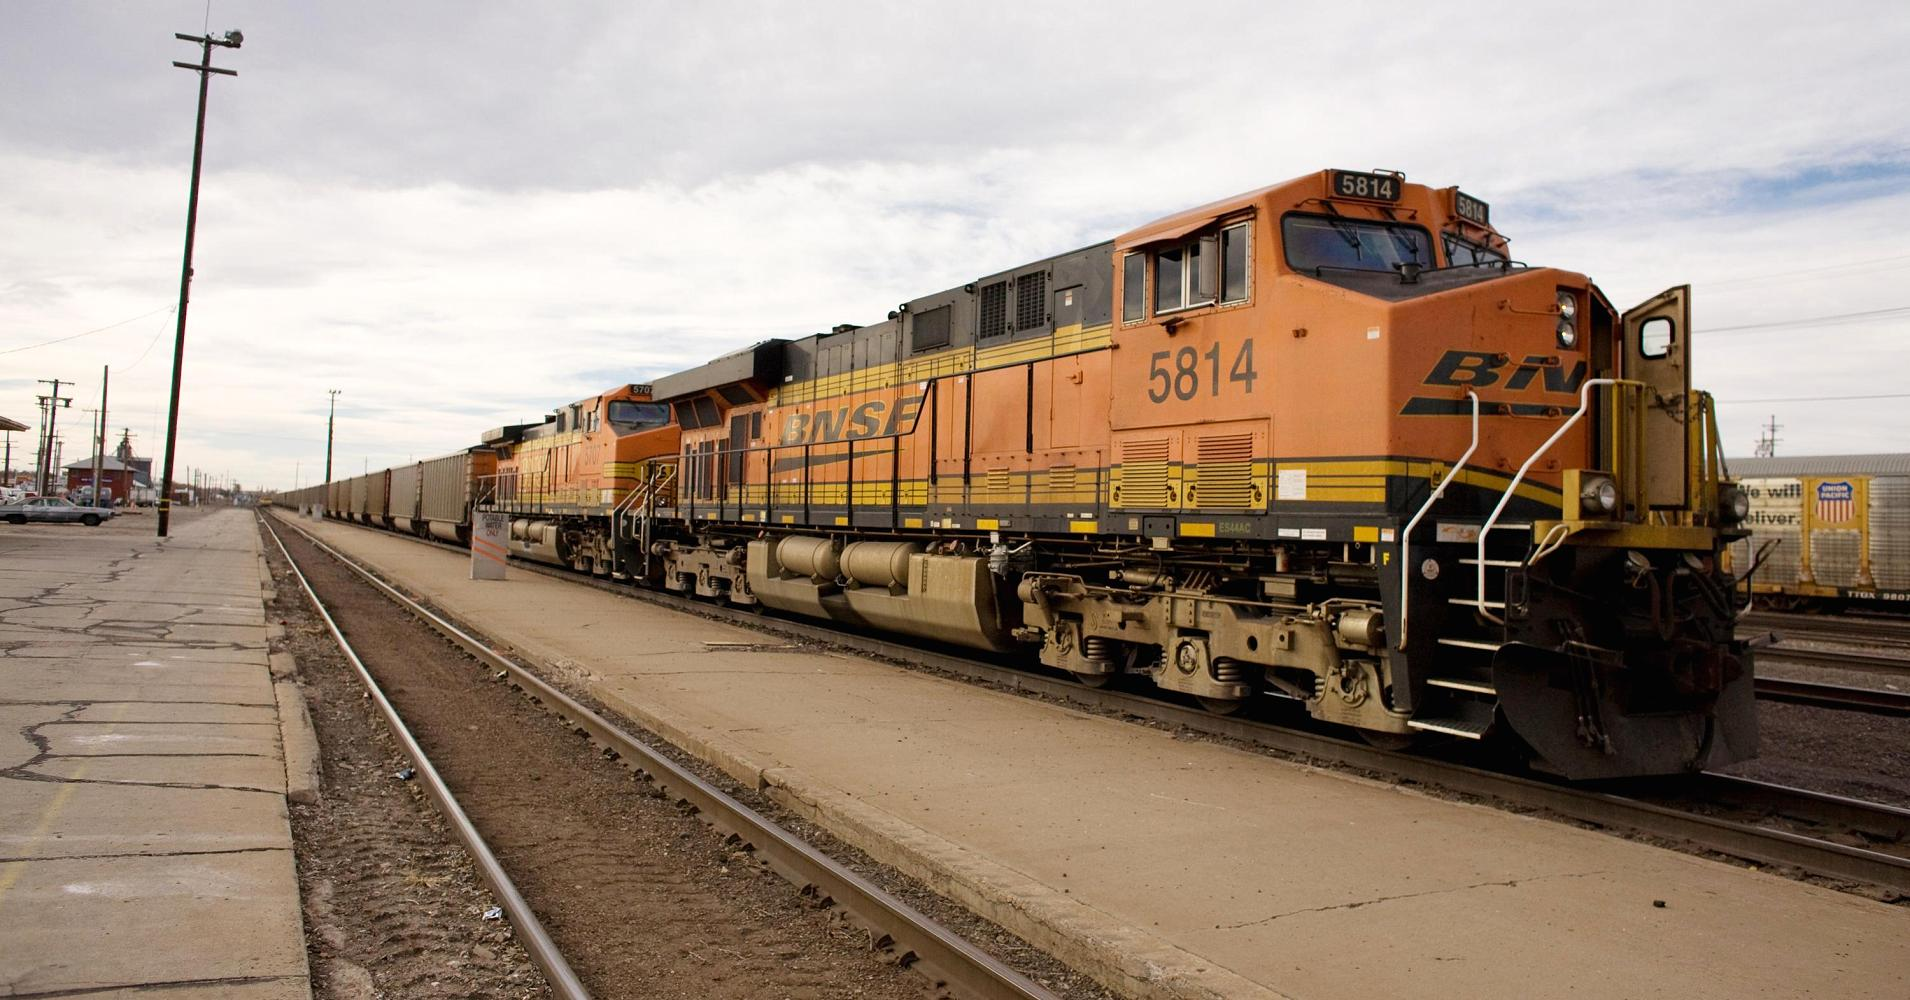 Bnsf To Take Bids To Buy Up To 5000 Safer Oil Railcars